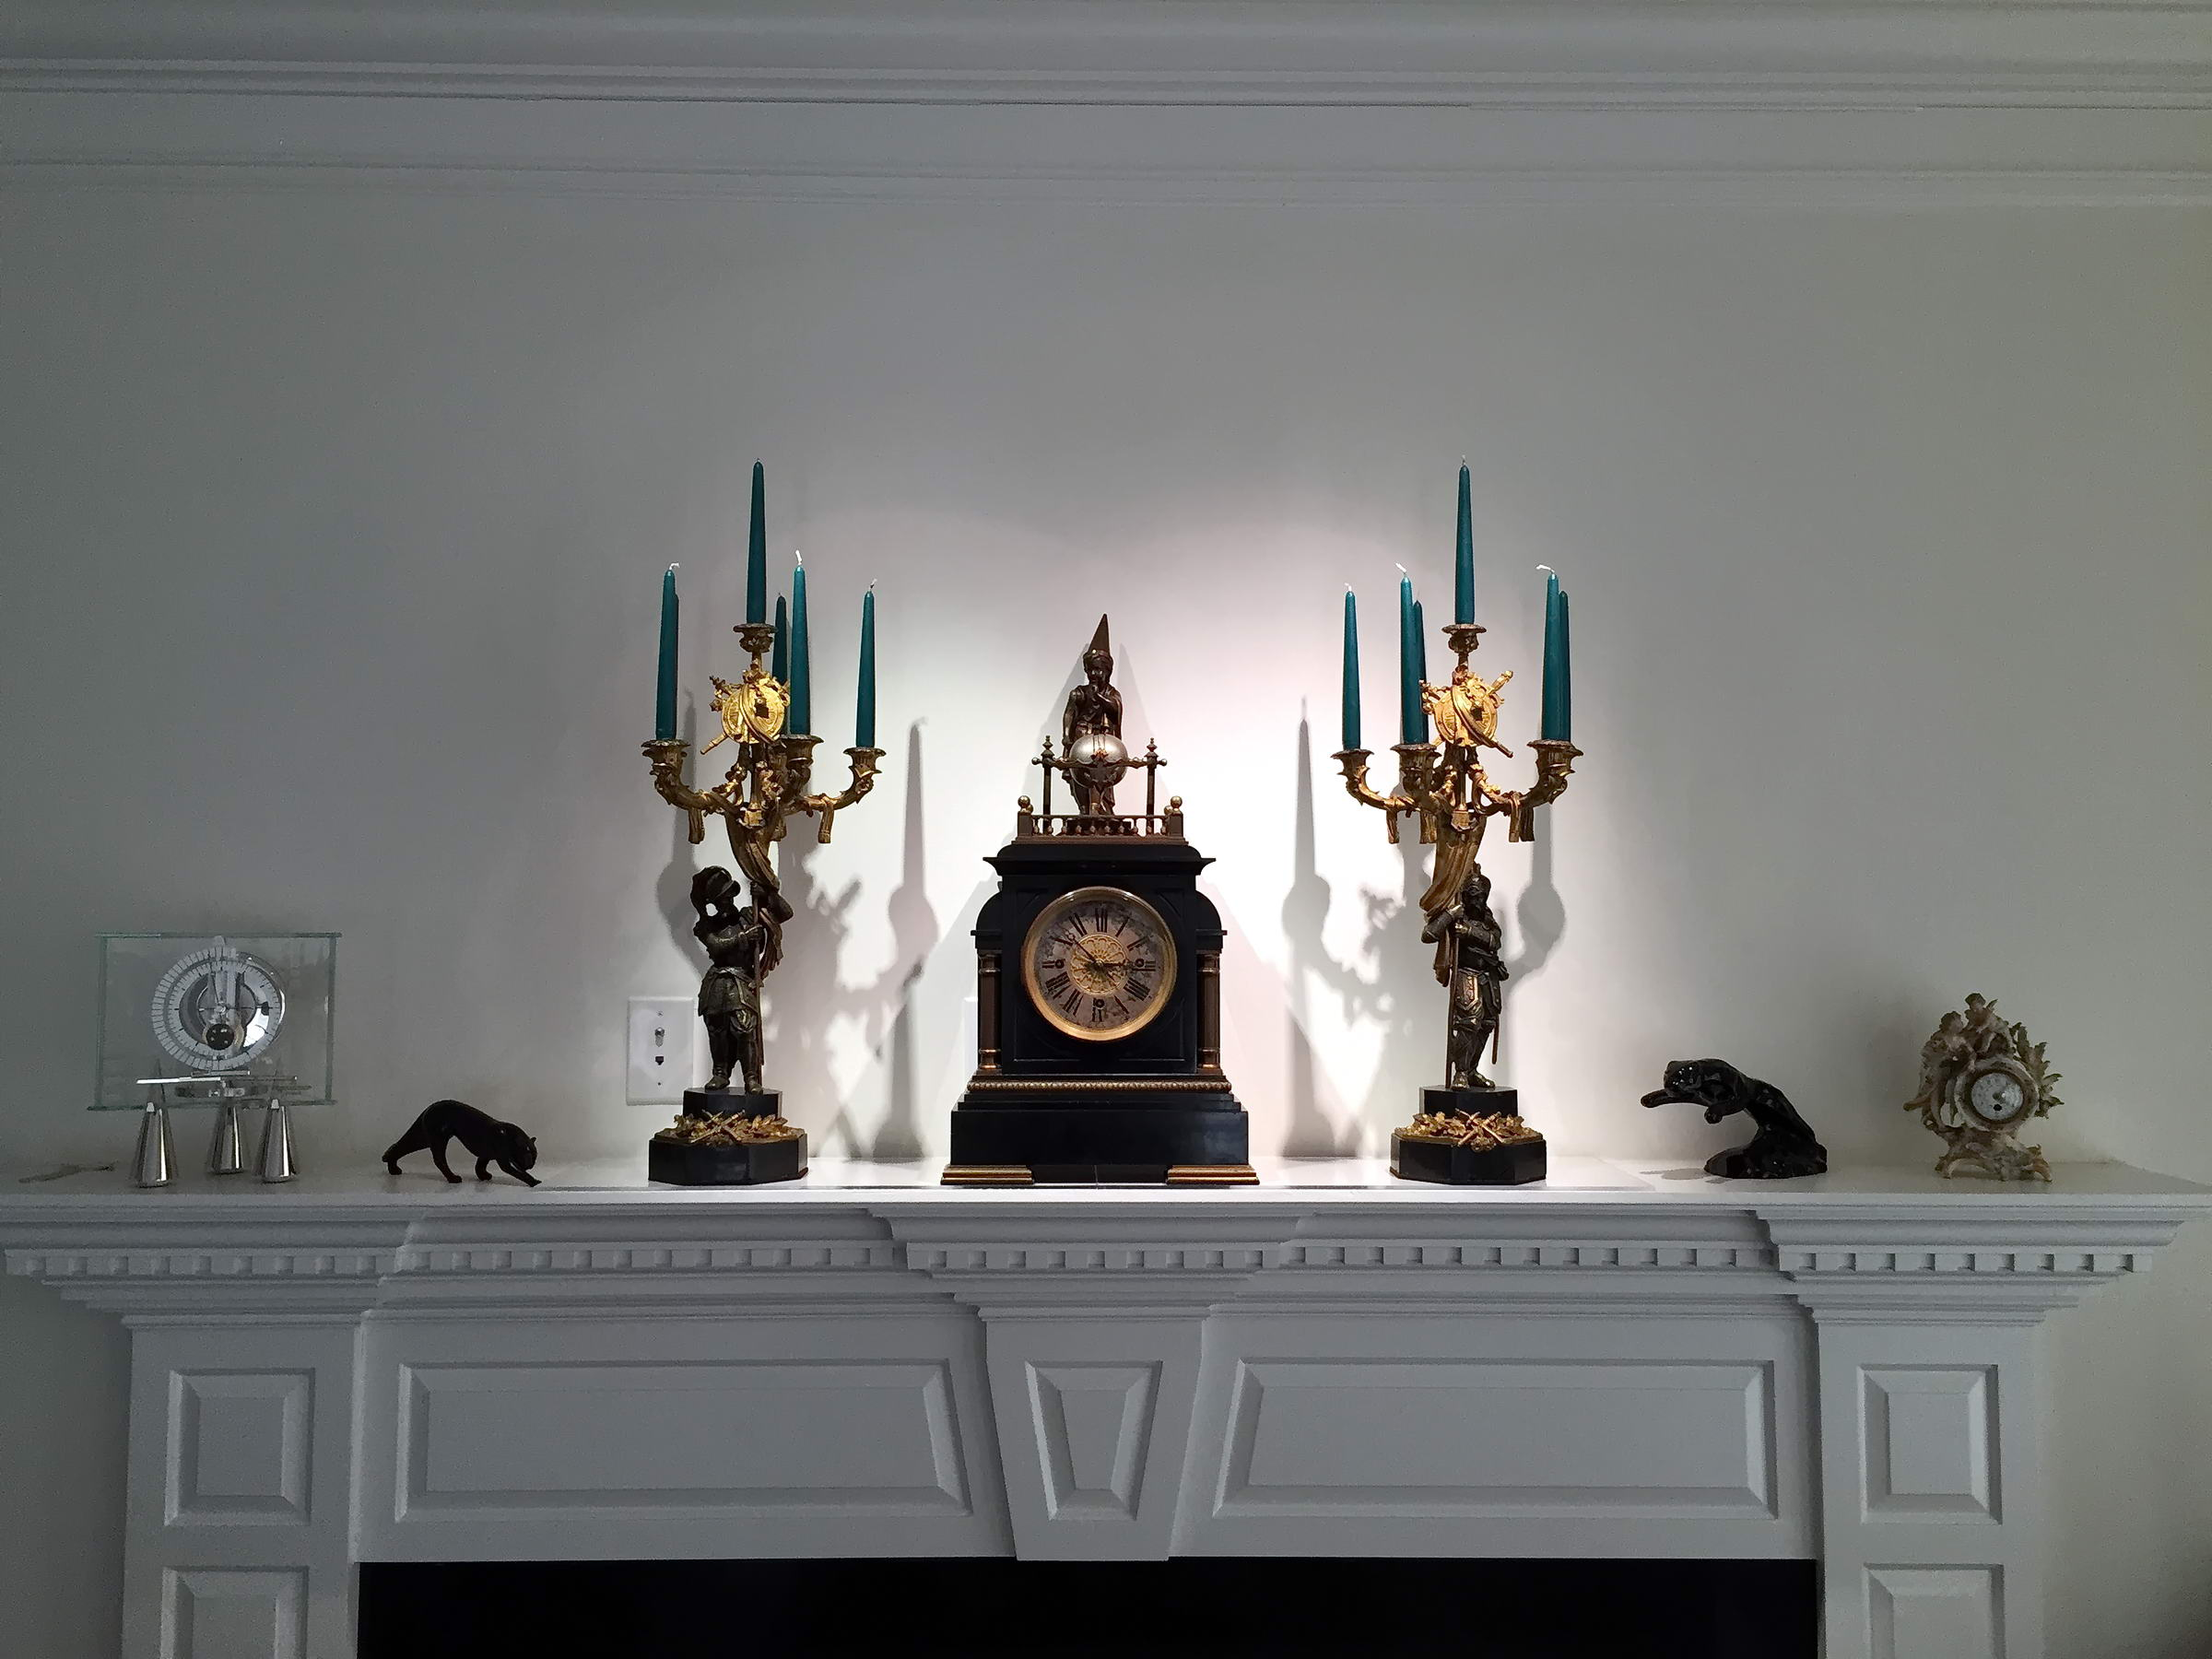 Mantel Clock- 1